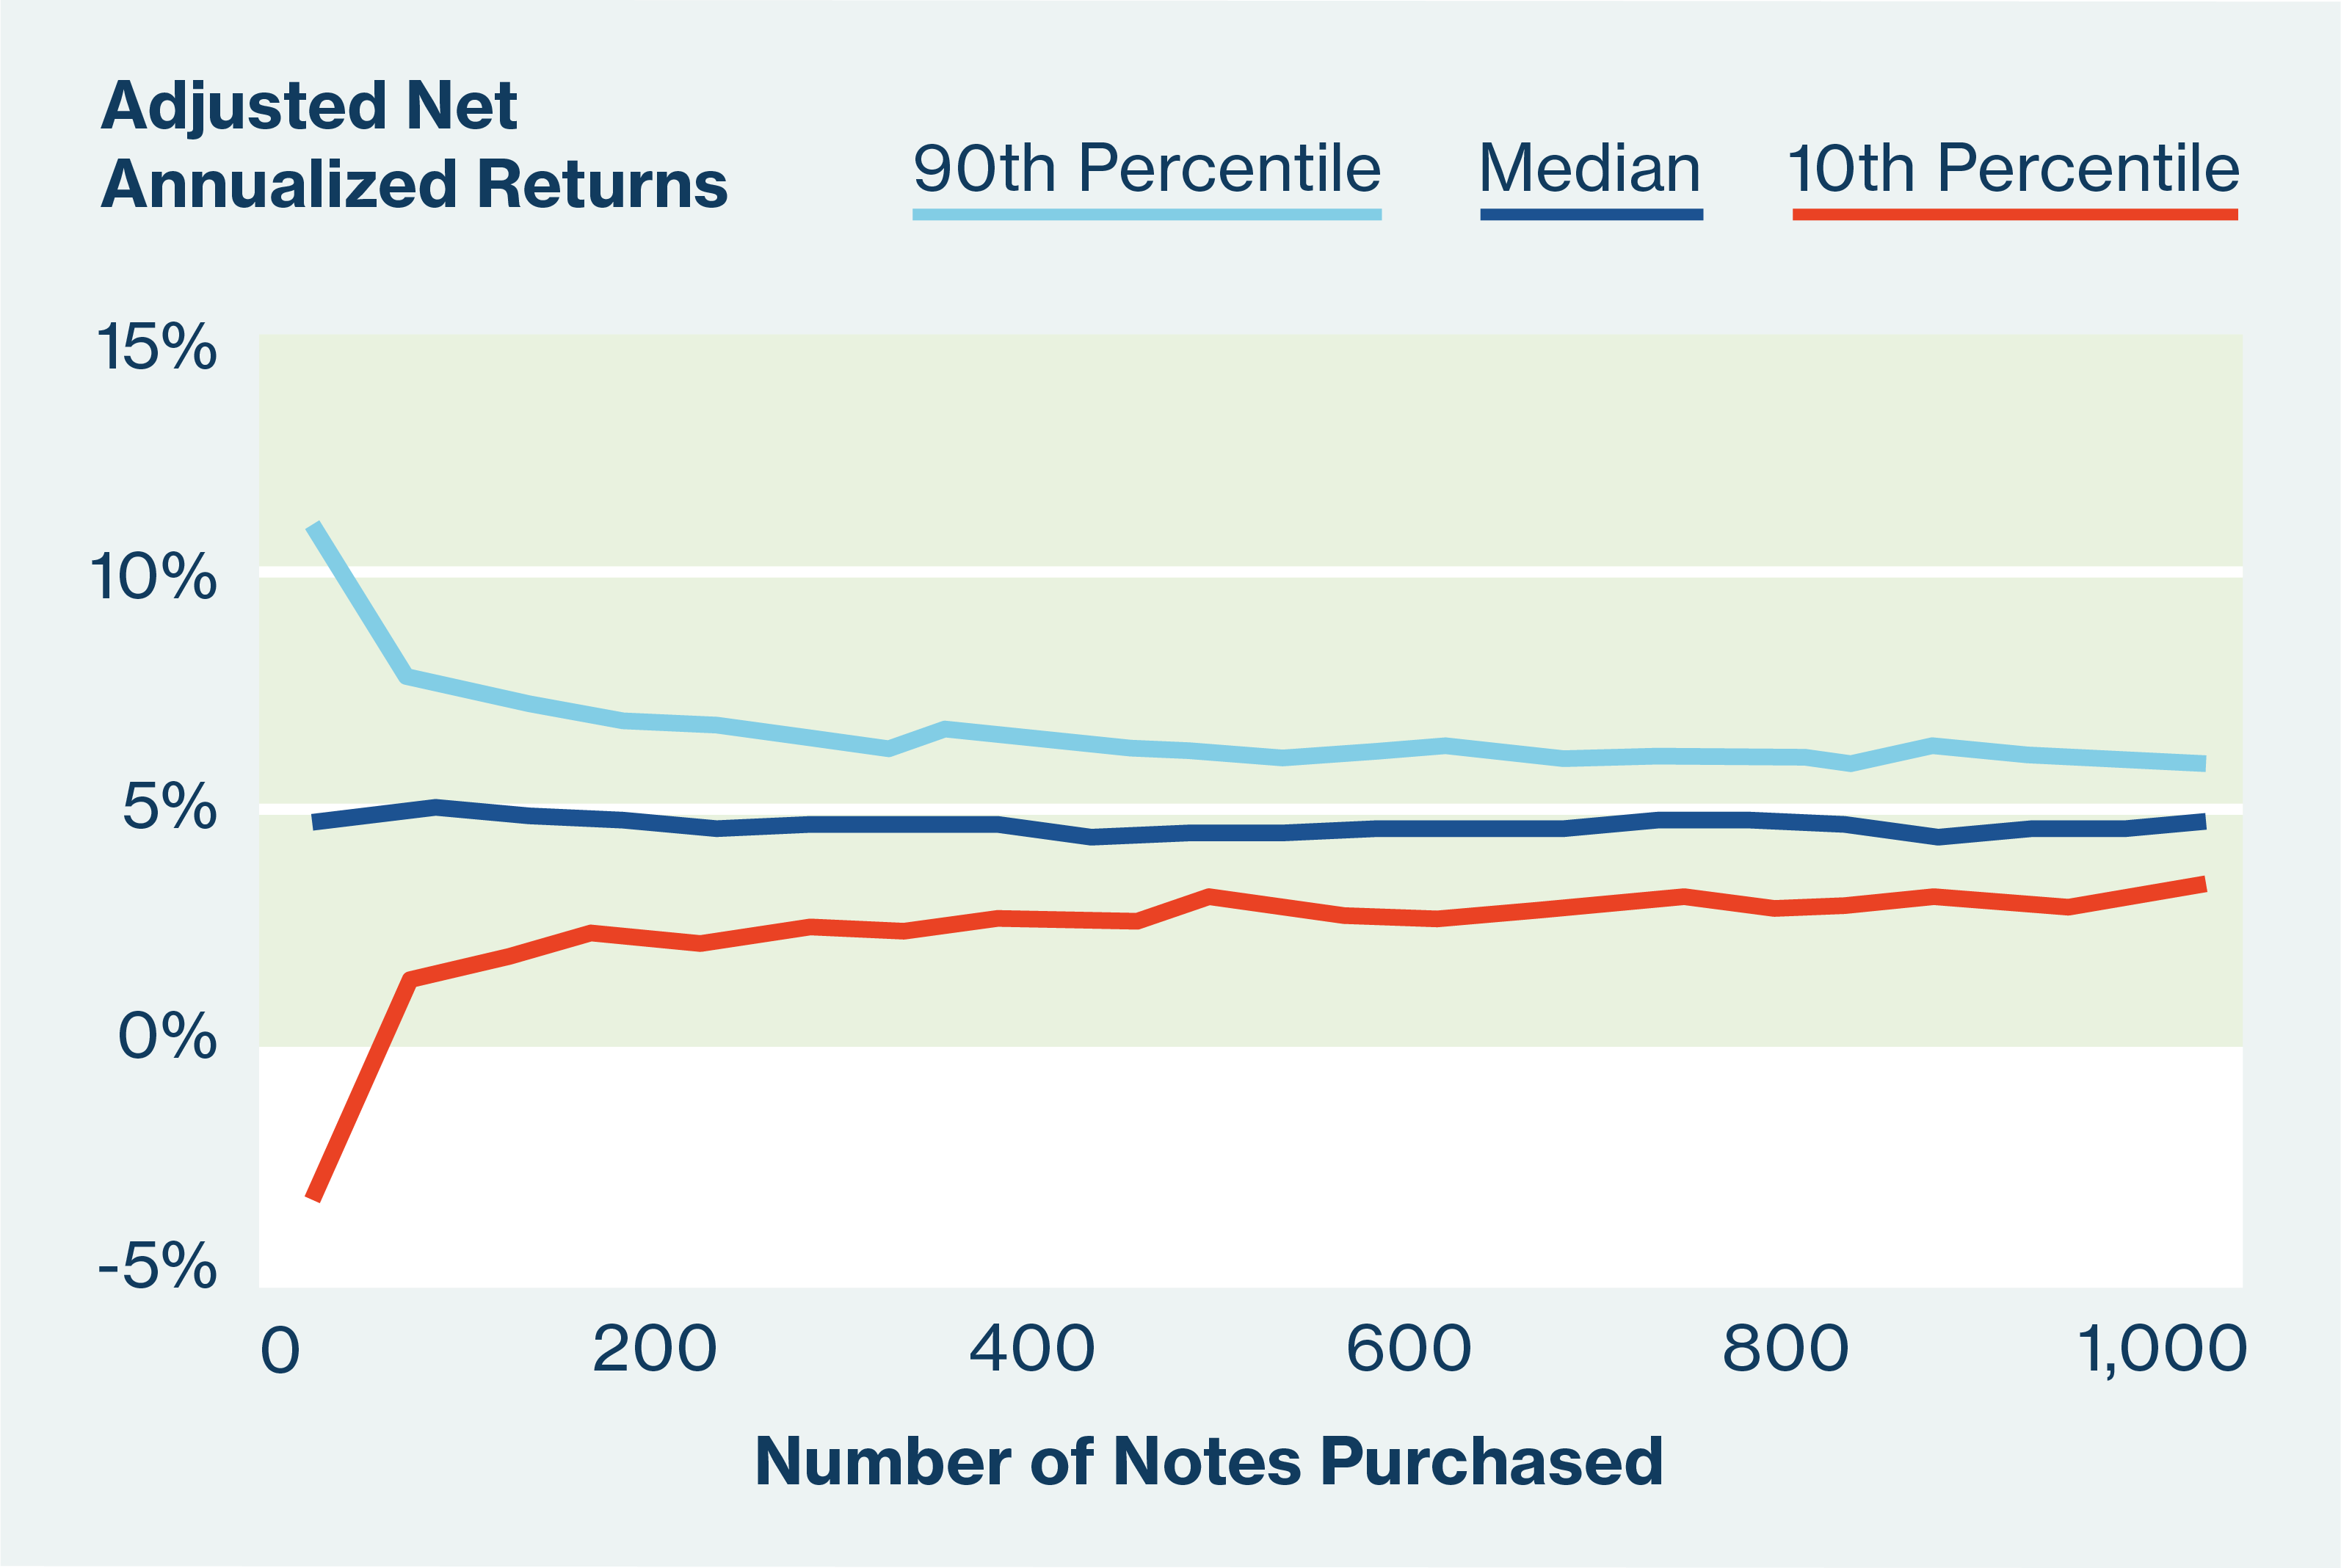 Adjusted Net Annualized Returns comparing 90th percentile, median, and 10th percentile.